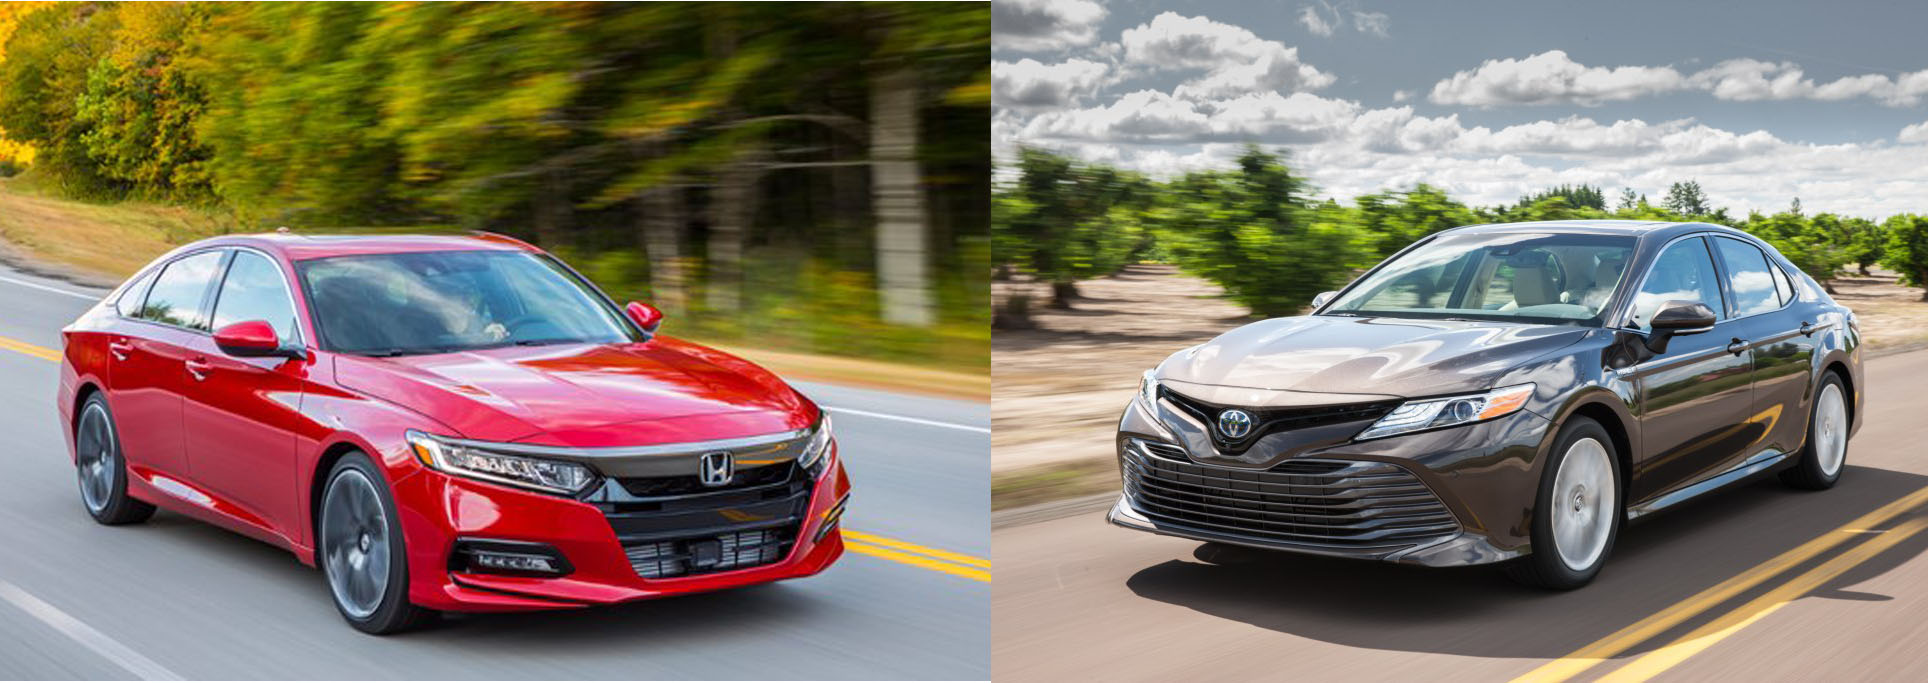 Accord Vs Camry >> 2019 Toyota Camry Vs 2019 Honda Accord Quick Comparison Motor